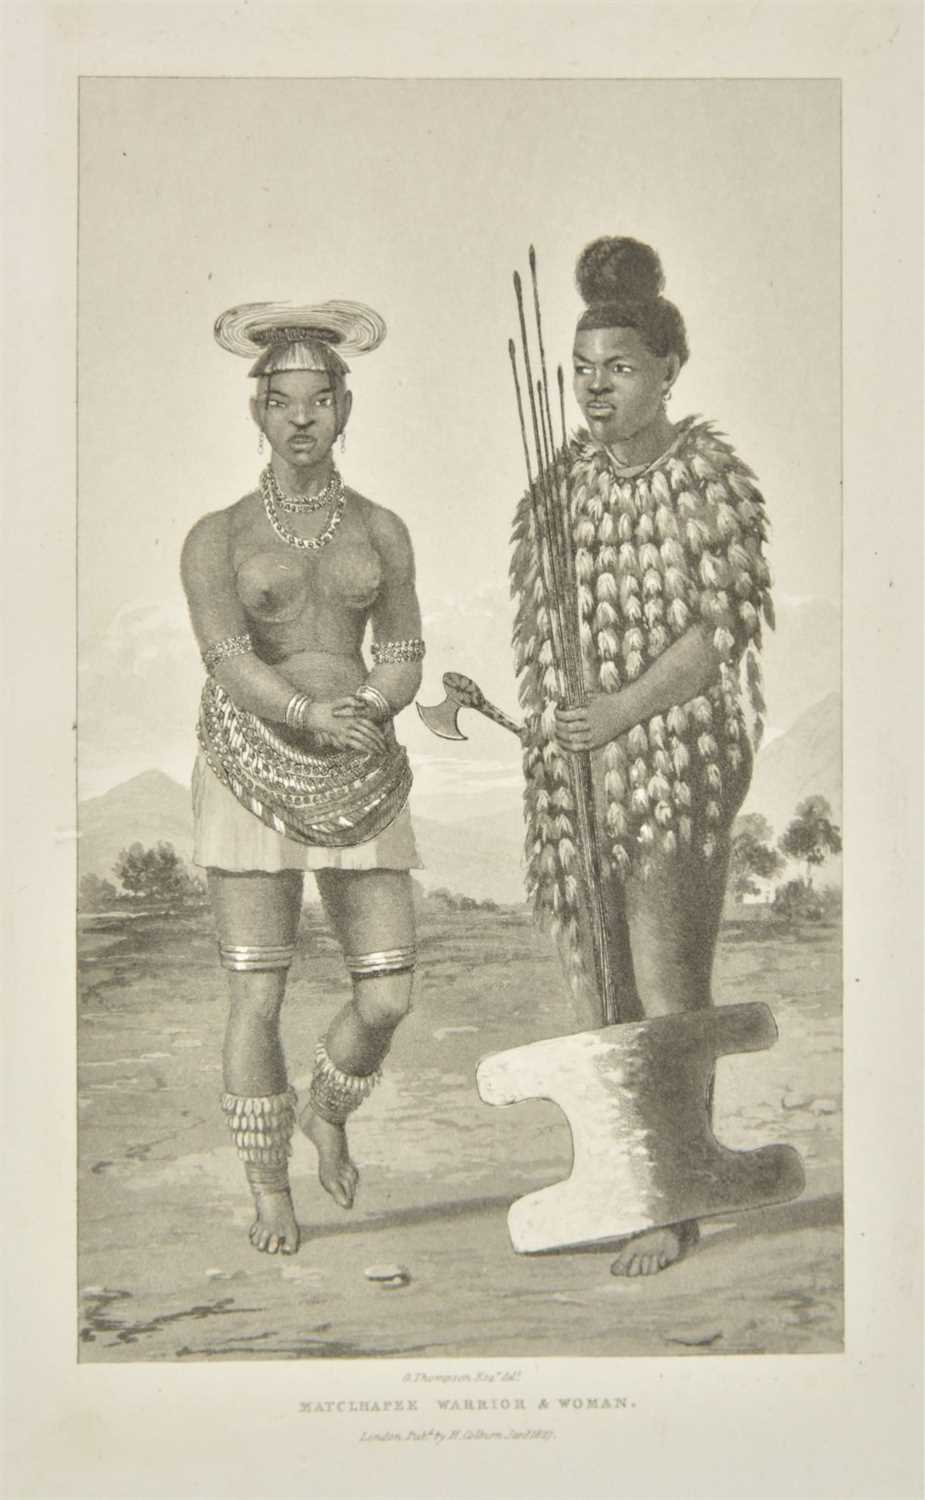 Lot 42-Thompson (George). Travels in Southern Africa, 1st edition, 1827